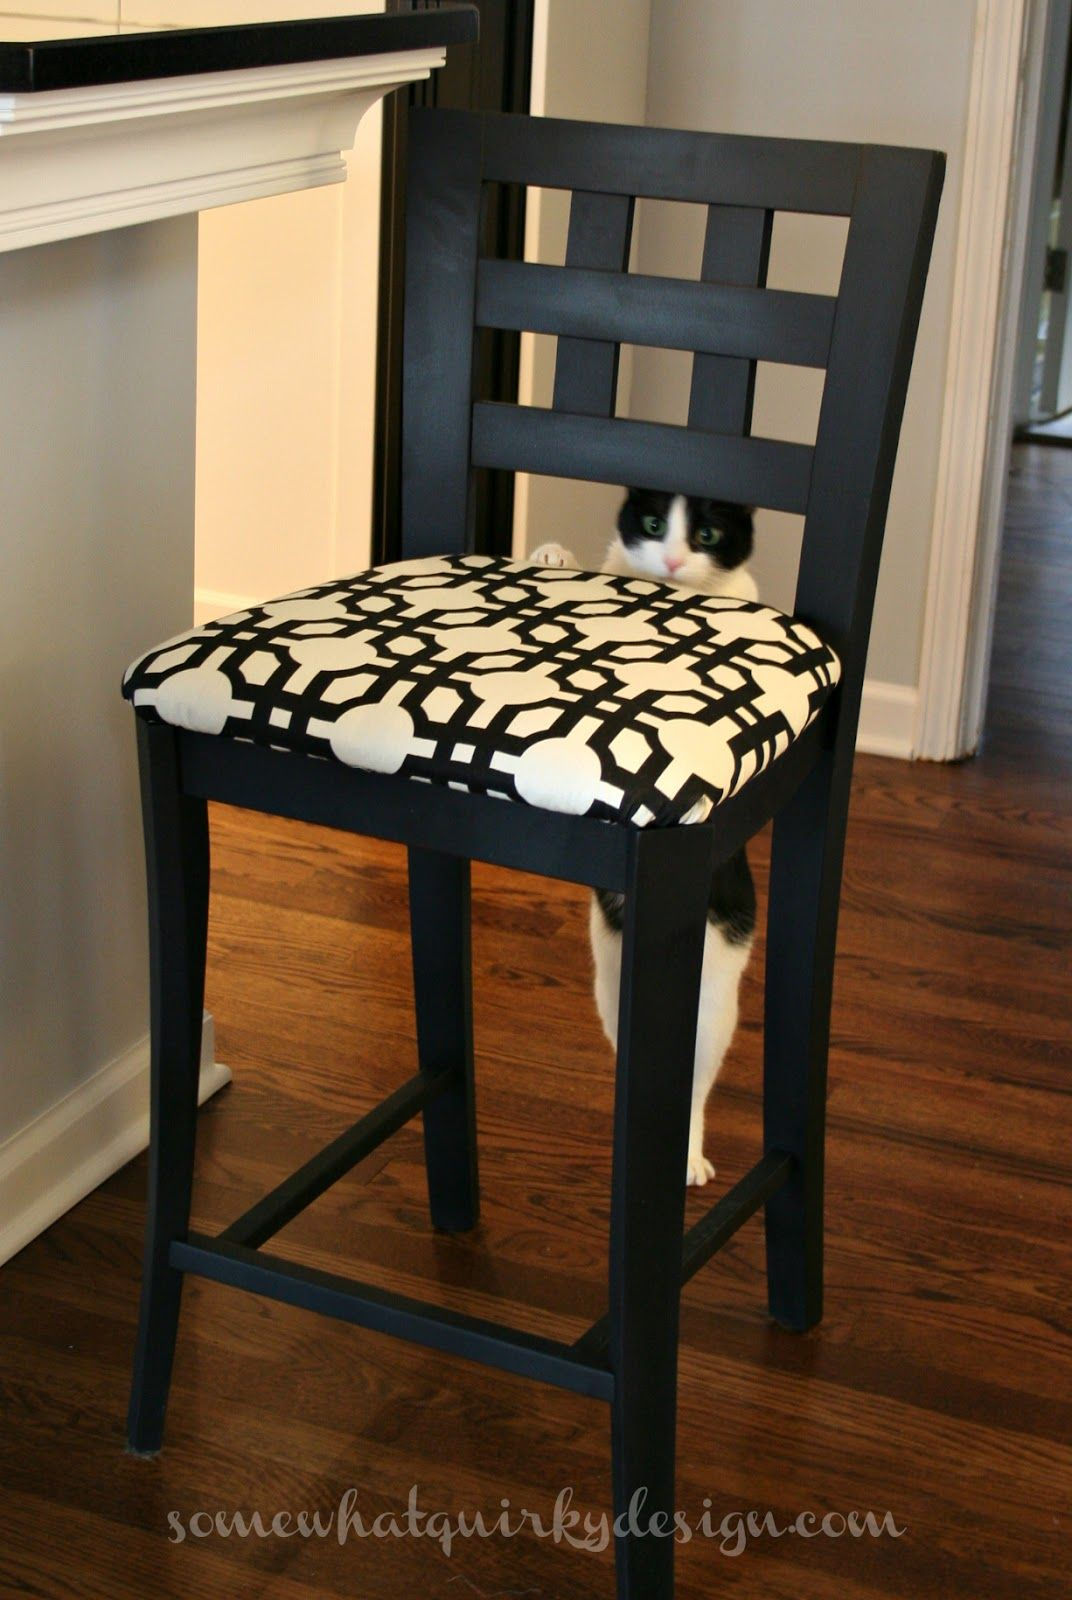 Brunch And Bar Stools A Winner Bar Chairs Design Upholstered